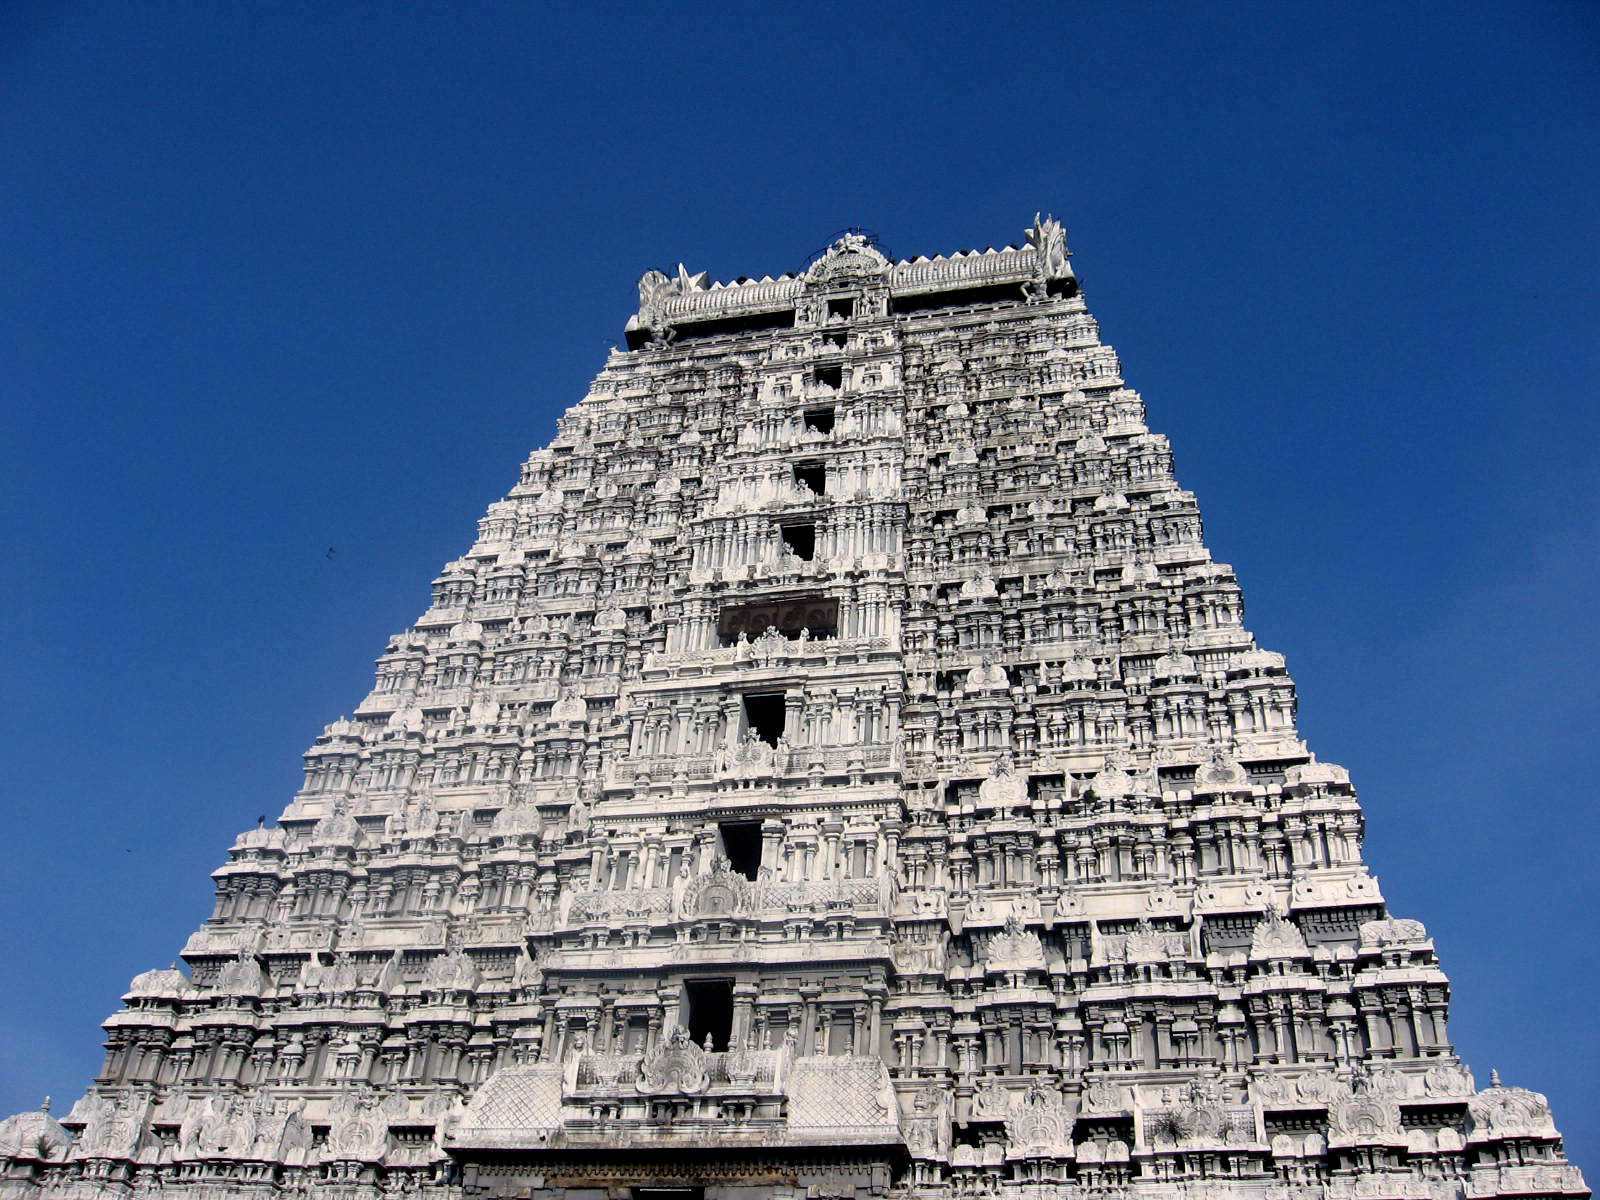 Annamalaiyar Temple | Thiruvannamalai Temple  IMAGES, GIF, ANIMATED GIF, WALLPAPER, STICKER FOR WHATSAPP & FACEBOOK